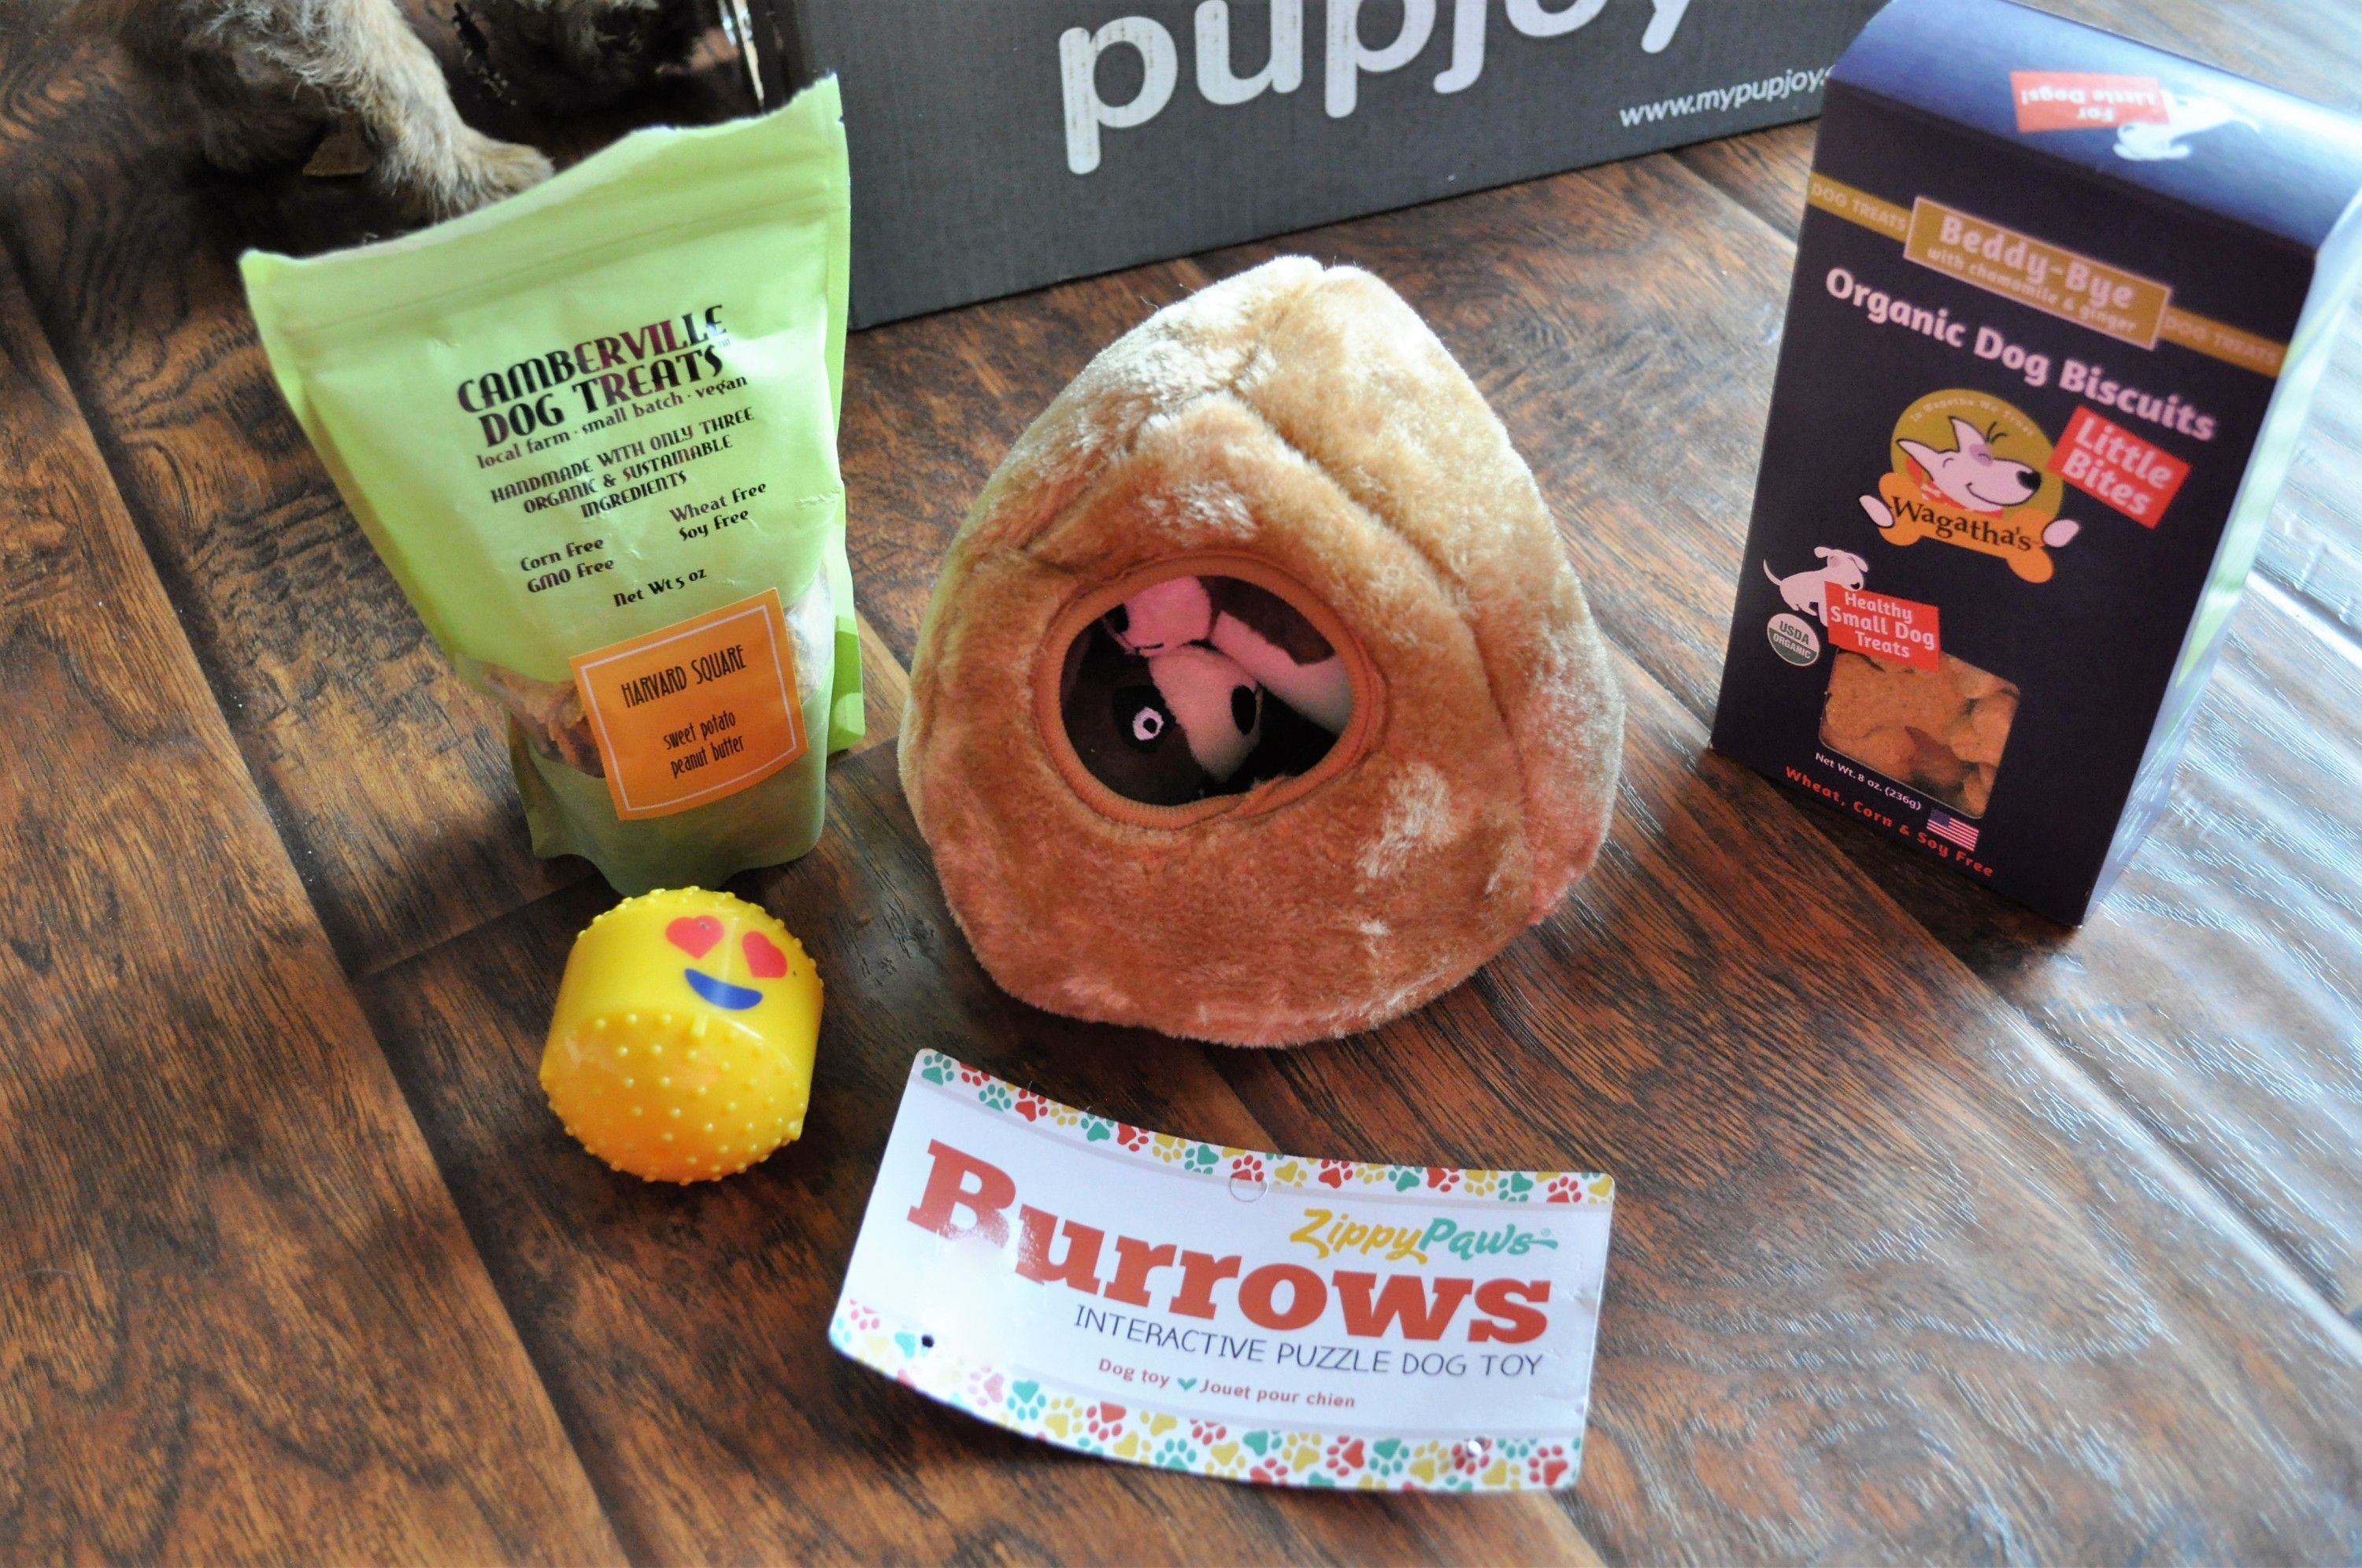 PupJoy May 2016 Contents